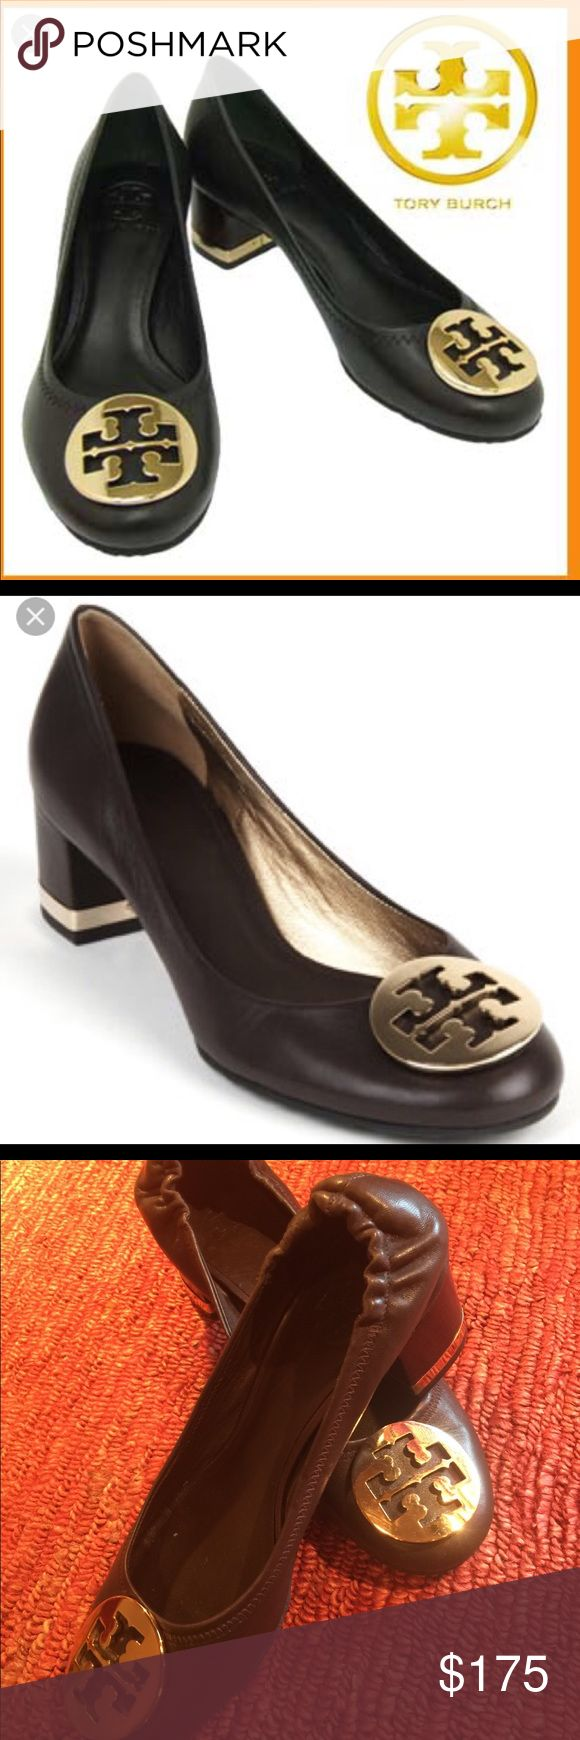 TORY BURCH Shoes 5-5.5 M